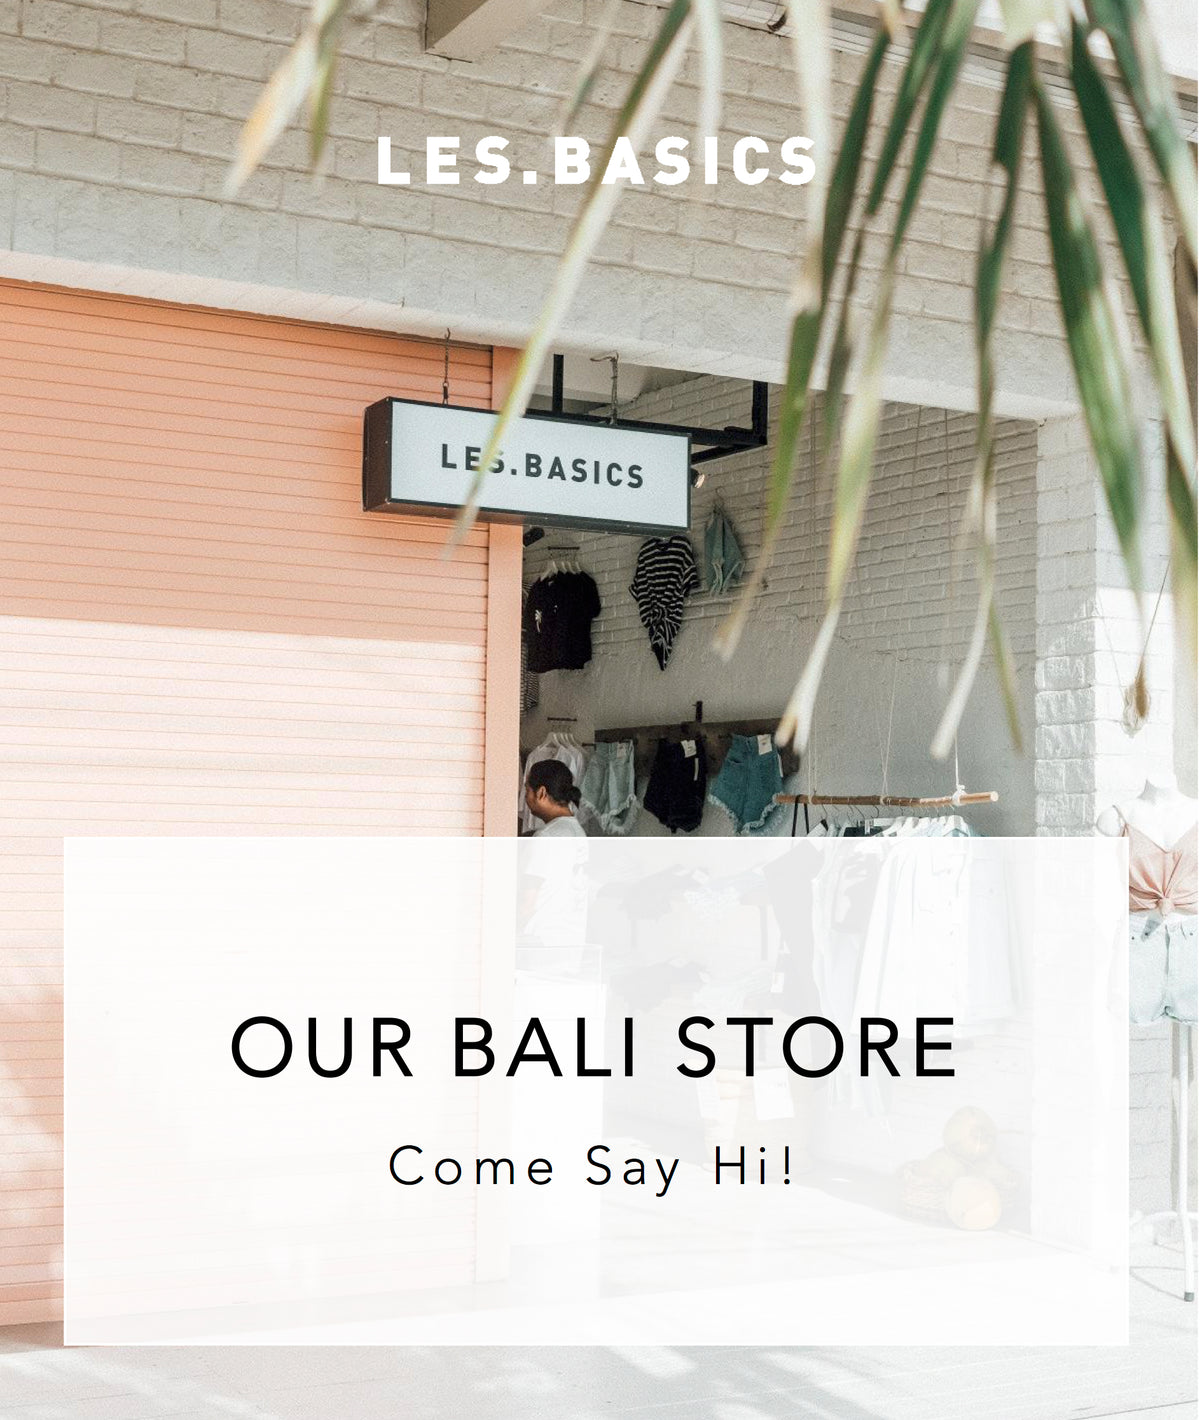 OUR LES.BASICS BALI STORE - COME SAY HI!